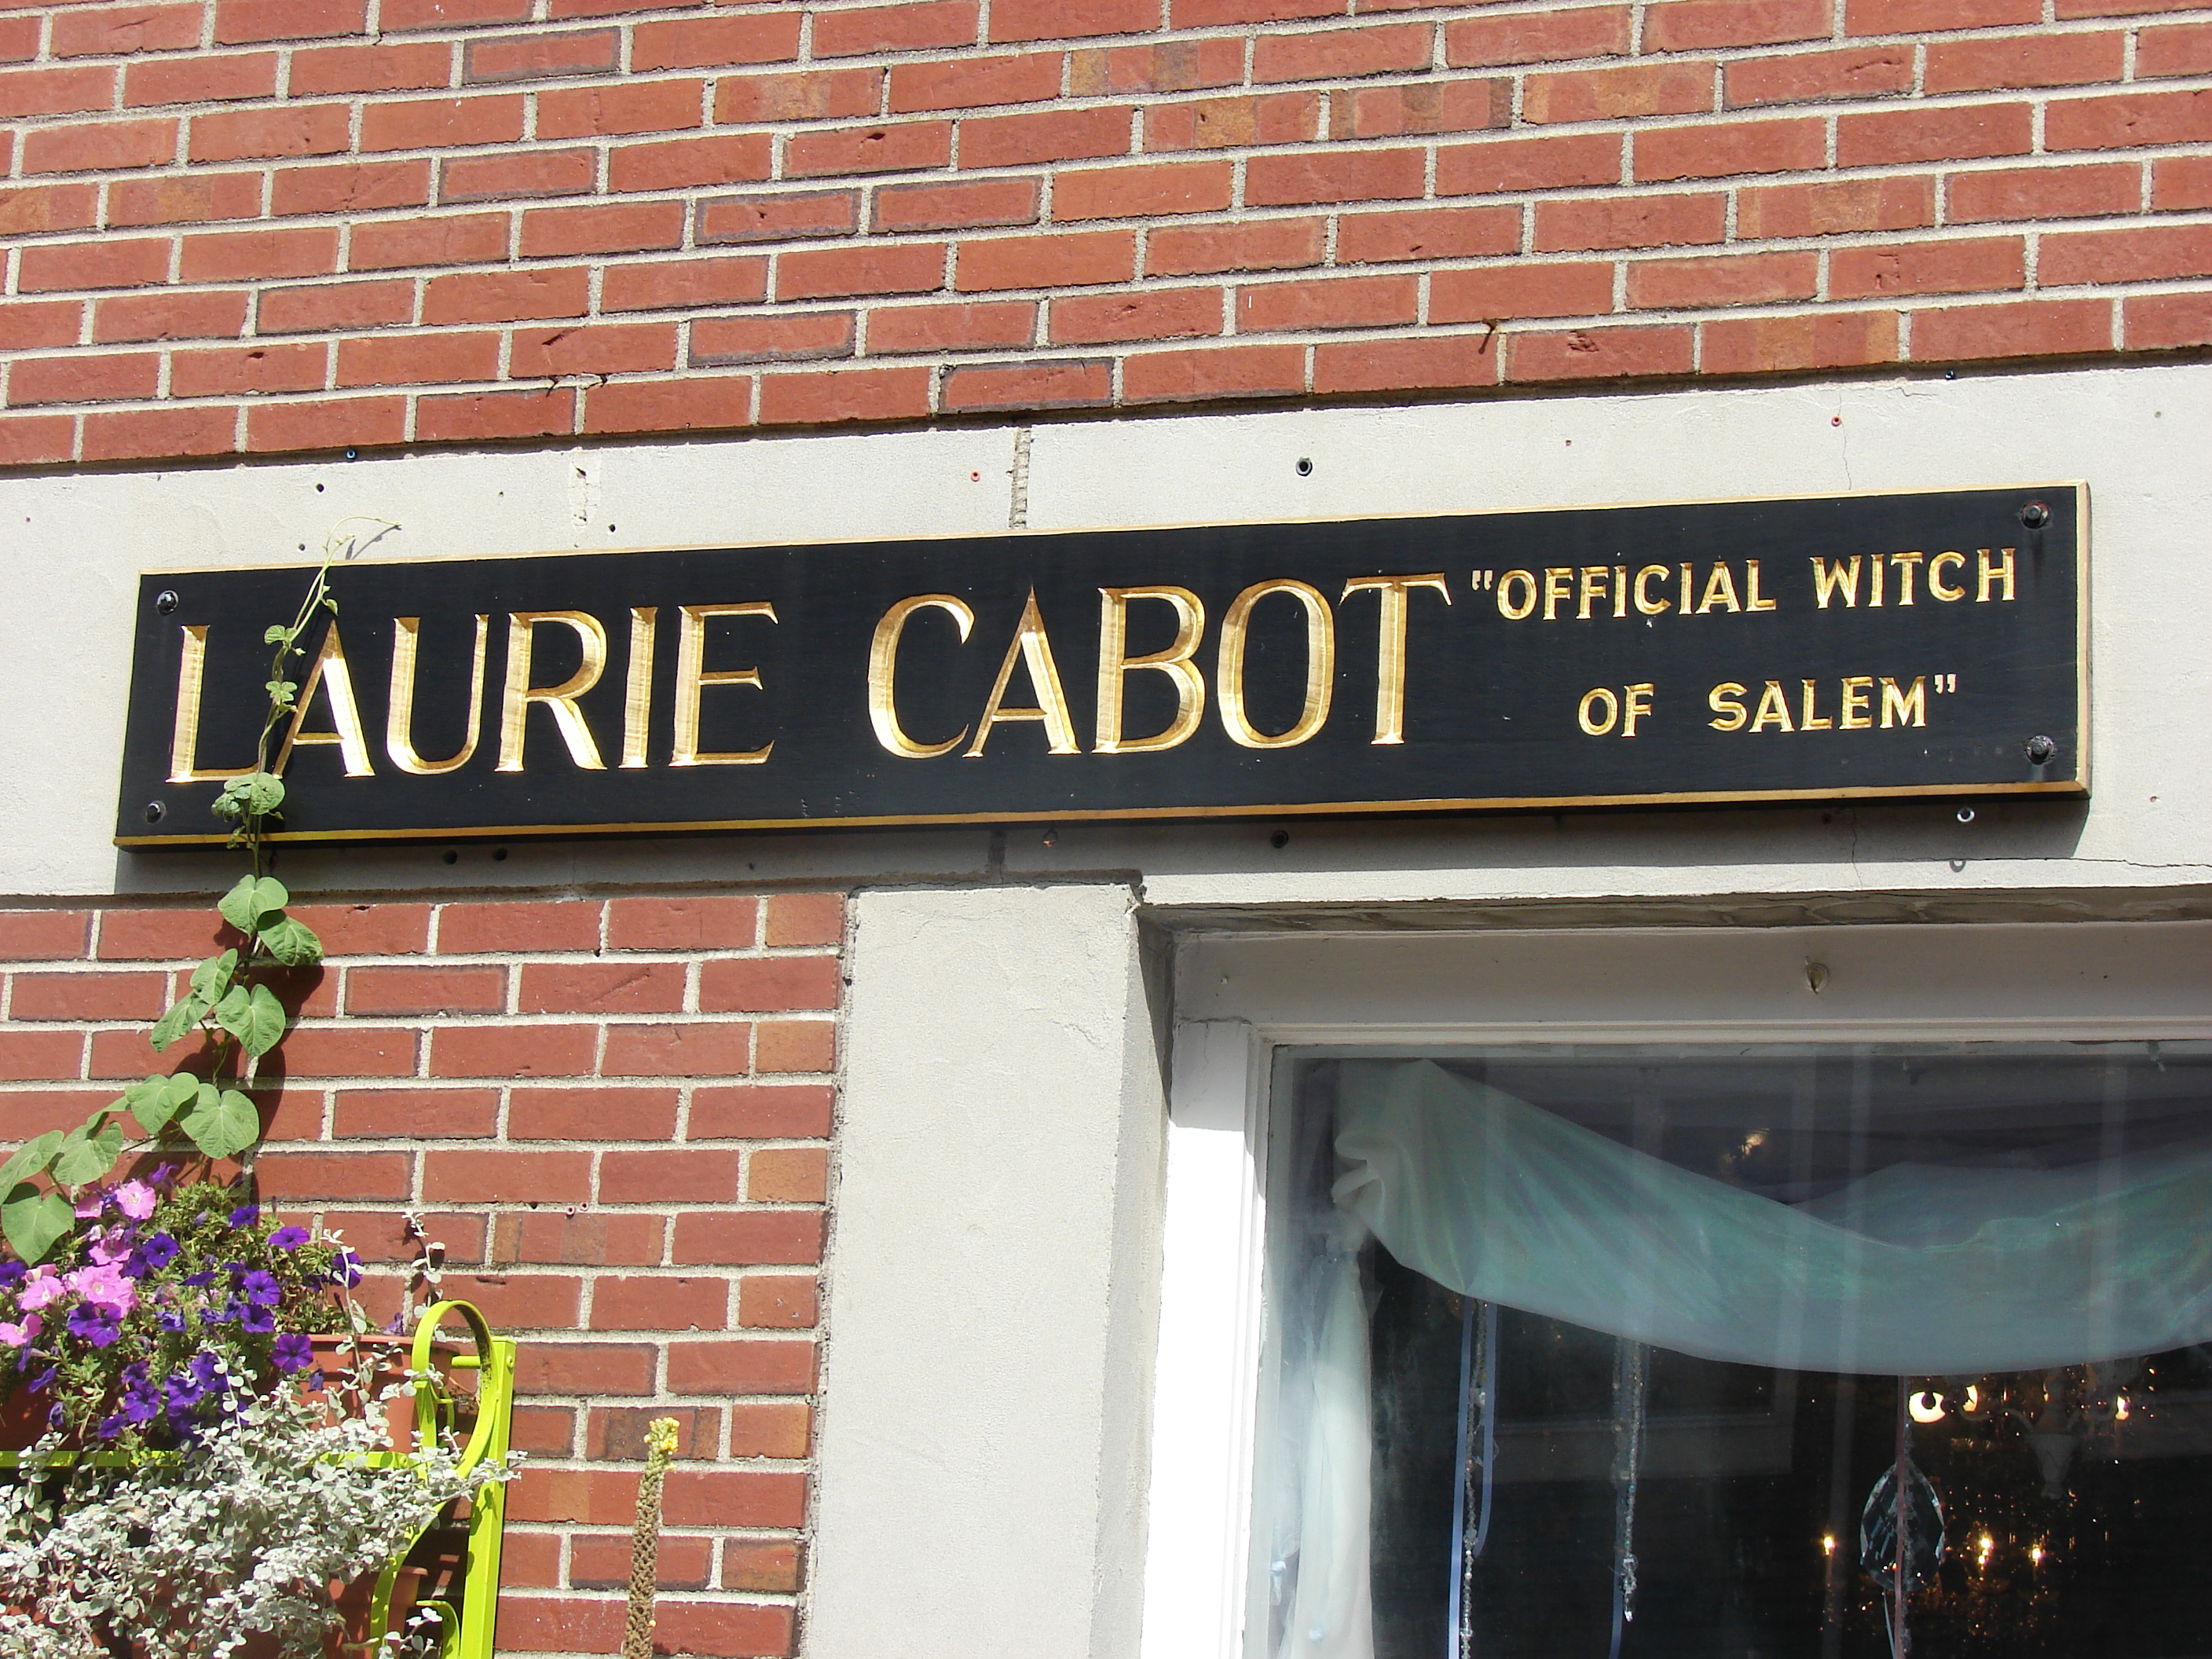 Laurie Cabot Official Witch Sign